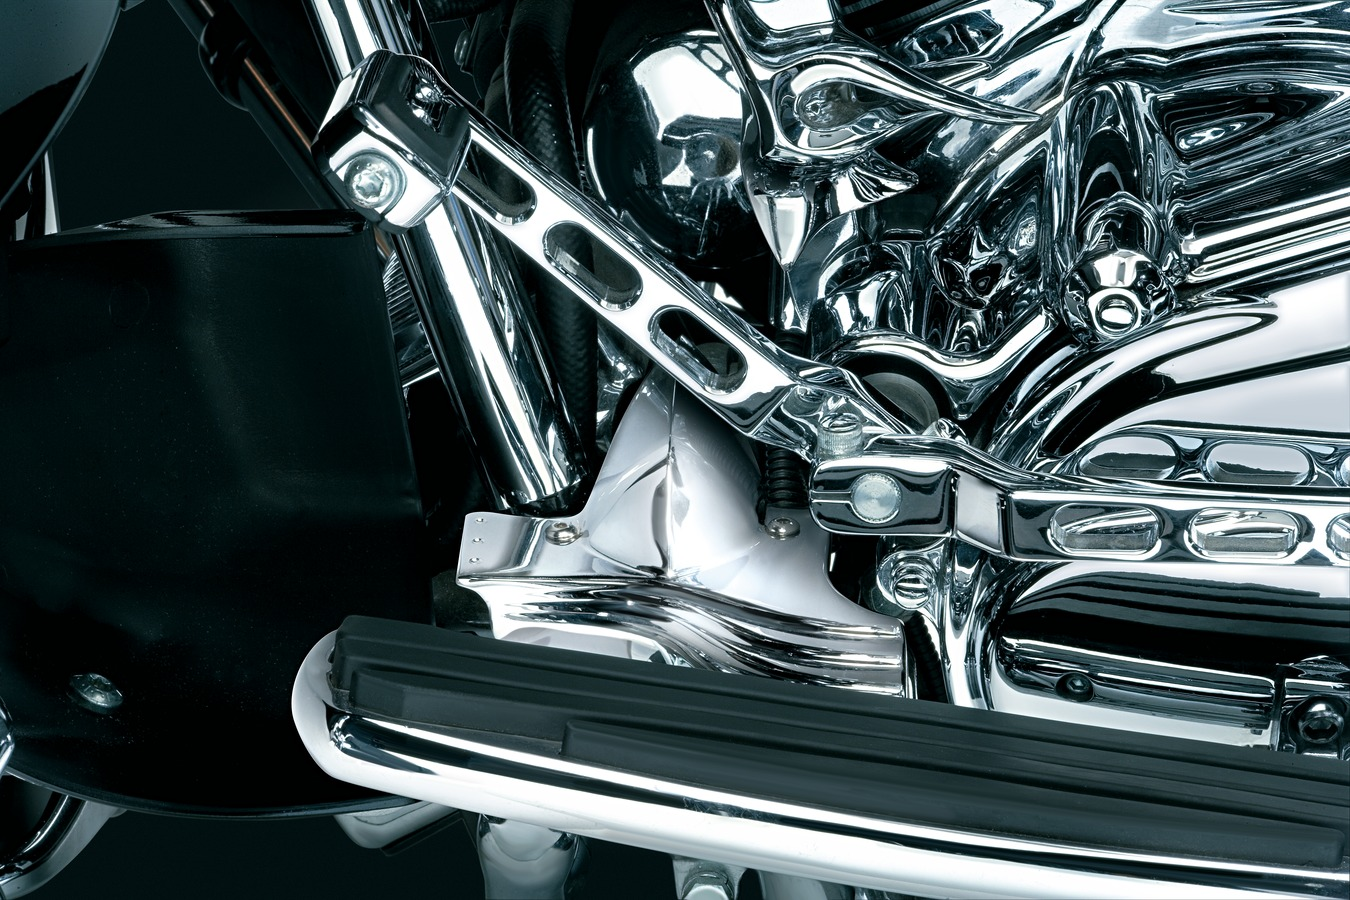 Kuryakyn Lower Front Frame Cover - Chrome - 91-16 Touring (7772) by  Kuryakyn - Direct Cycle Parts -